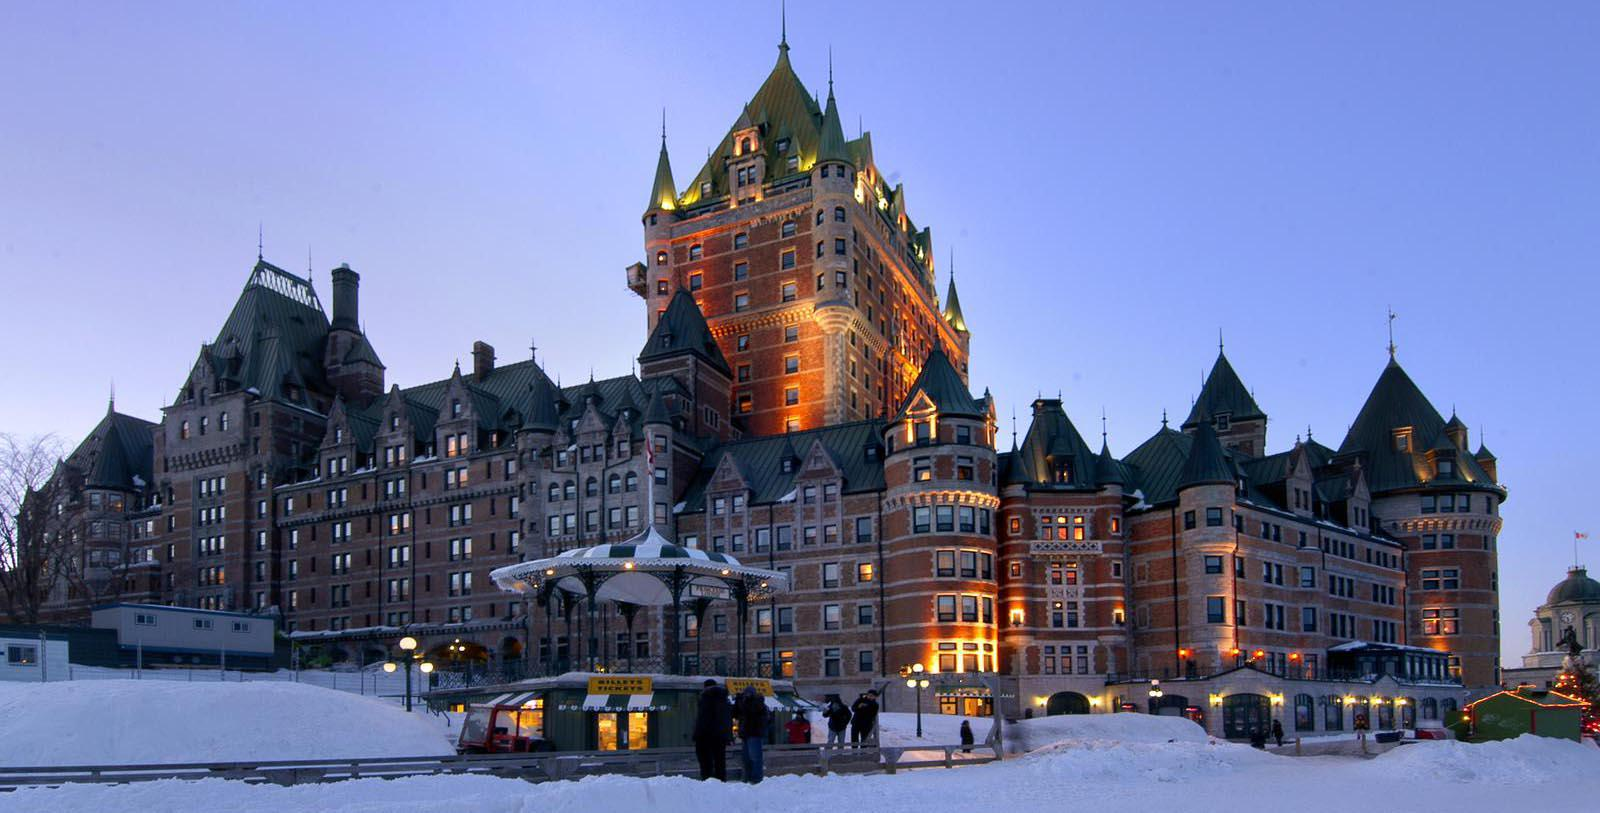 Daytime exterior of the Fairmont Le Chateau Frontenac in Quebec, Canada.